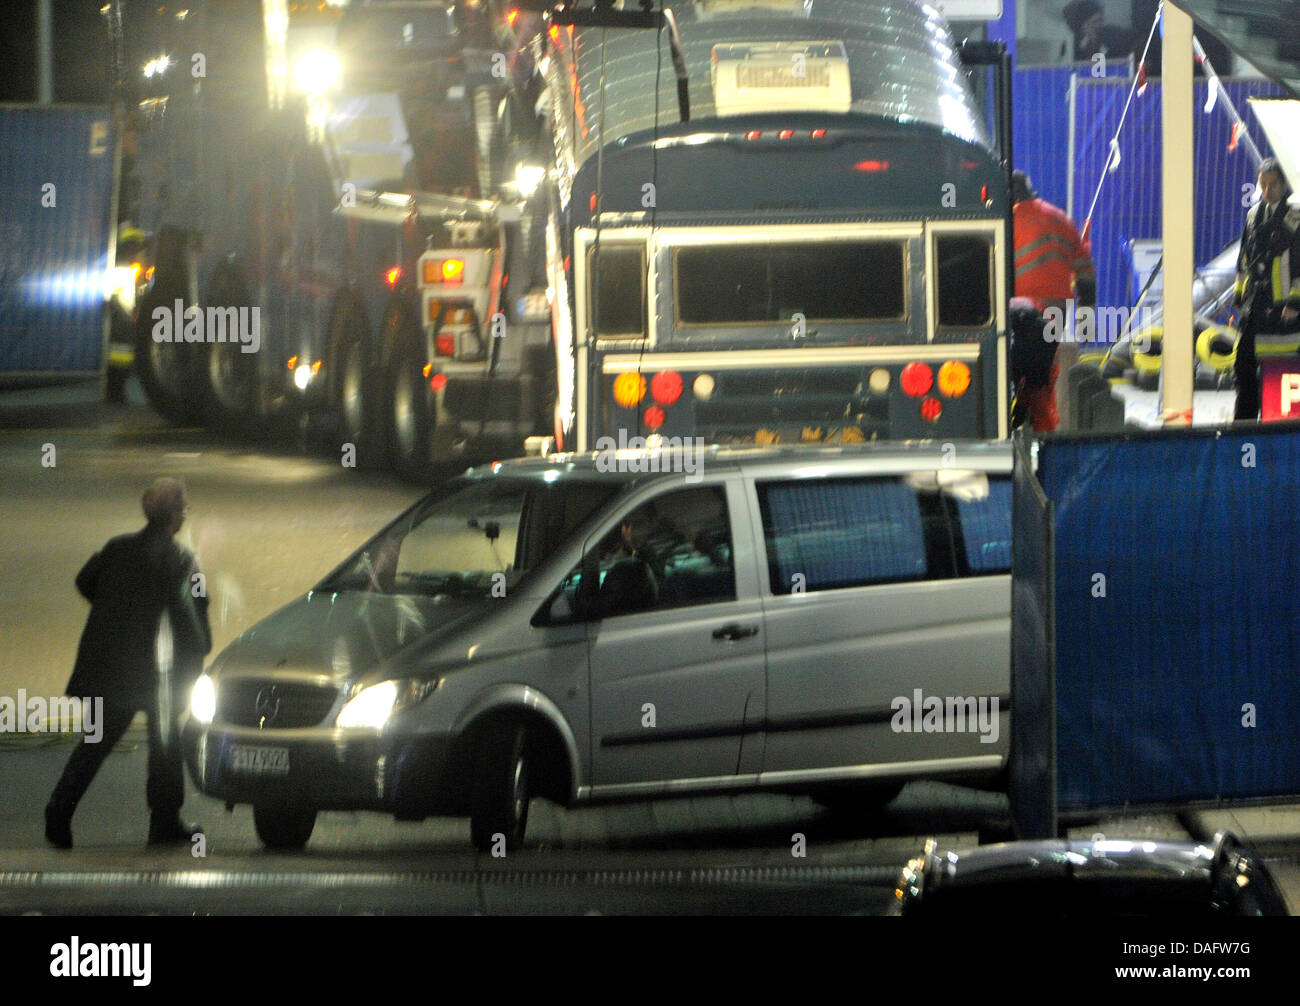 A coroner's car transports the bodies of the two vicitms away from the crime scene with the bus in the background - Stock Image